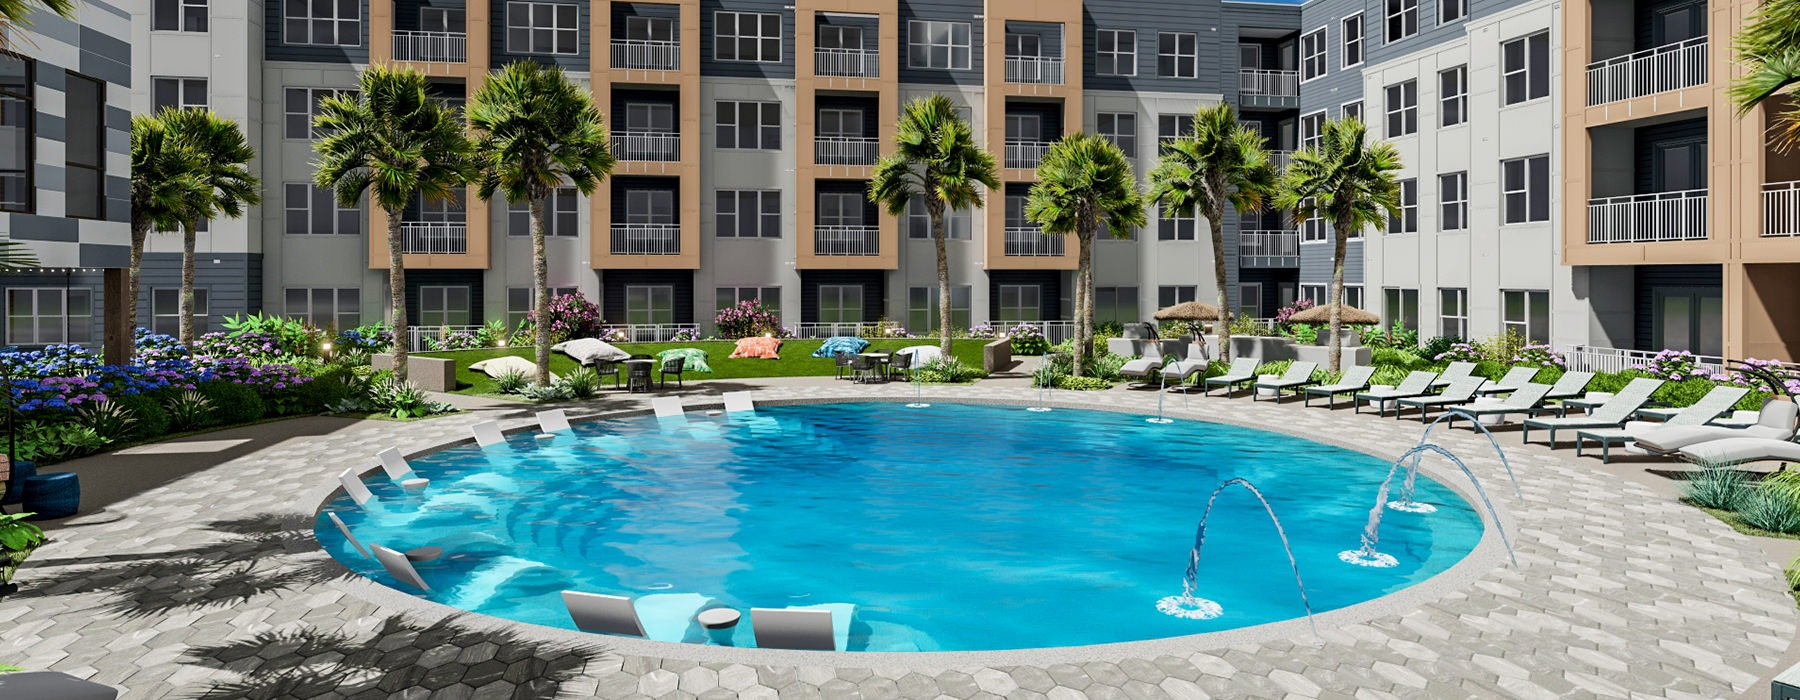 Resort-style pool area with ample seating